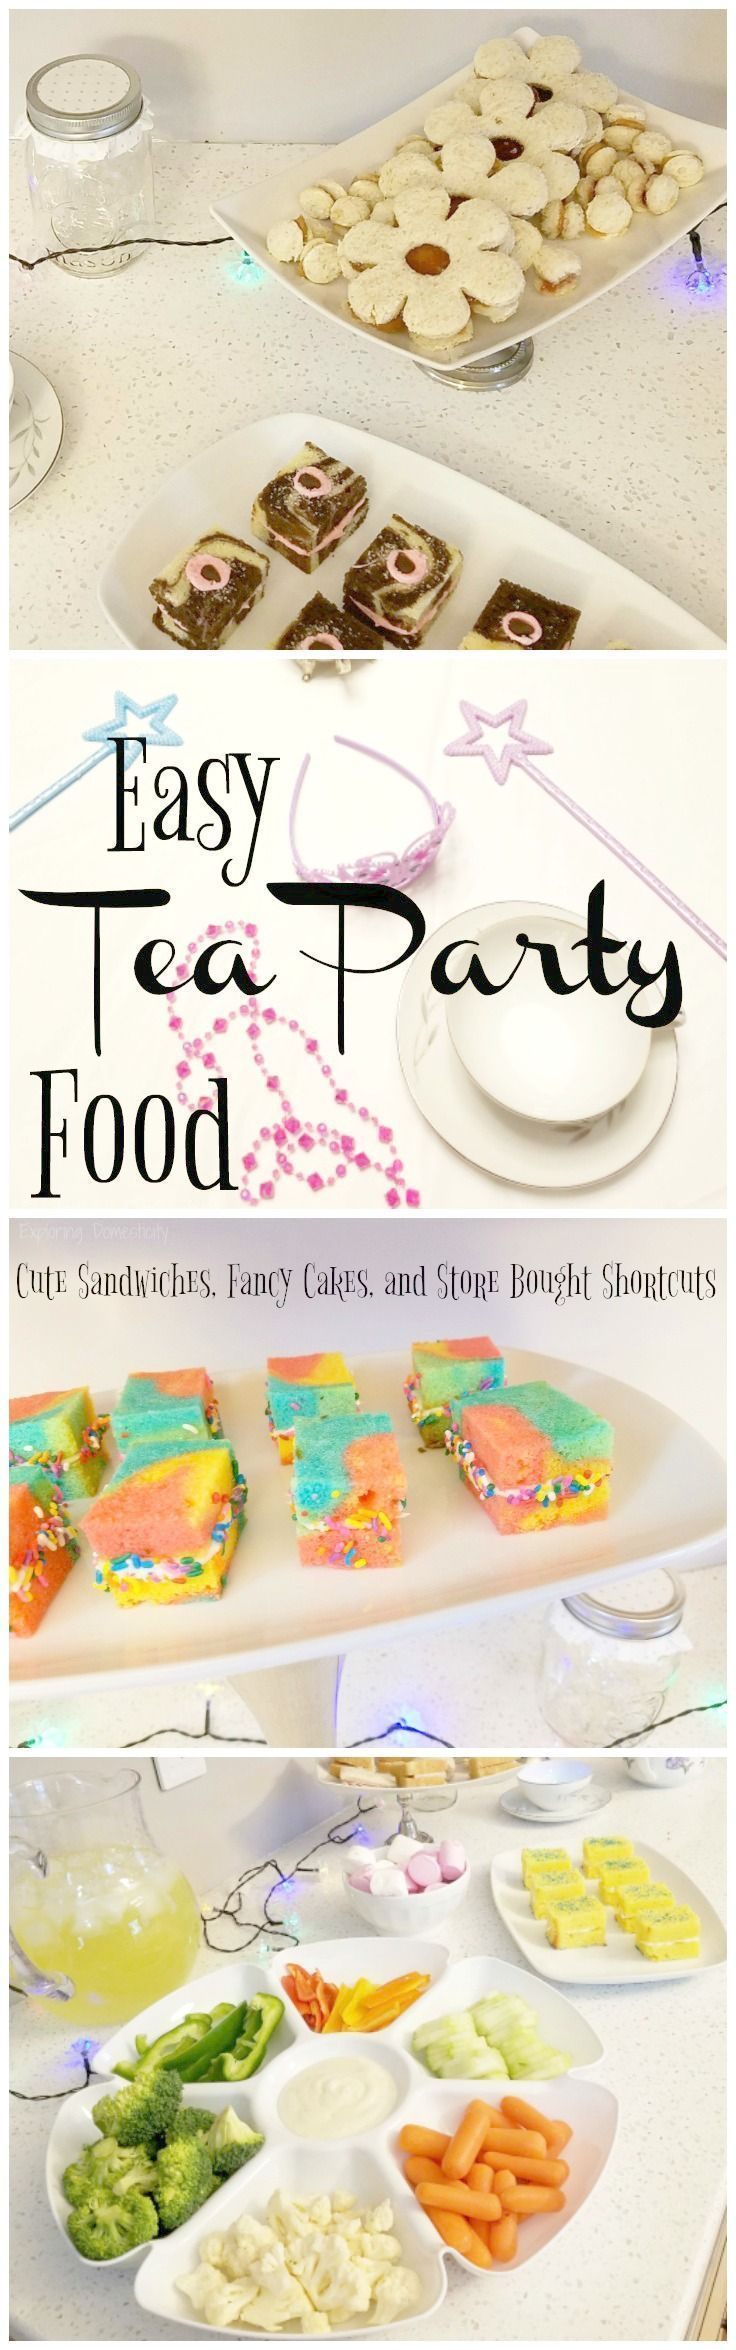 Easy Tea Party Food - Cute Sandwiches, Fancy Cakes, & Store Bought Shortcuts  #kids #teaparty #birthday #fairy #party #birthdayparty